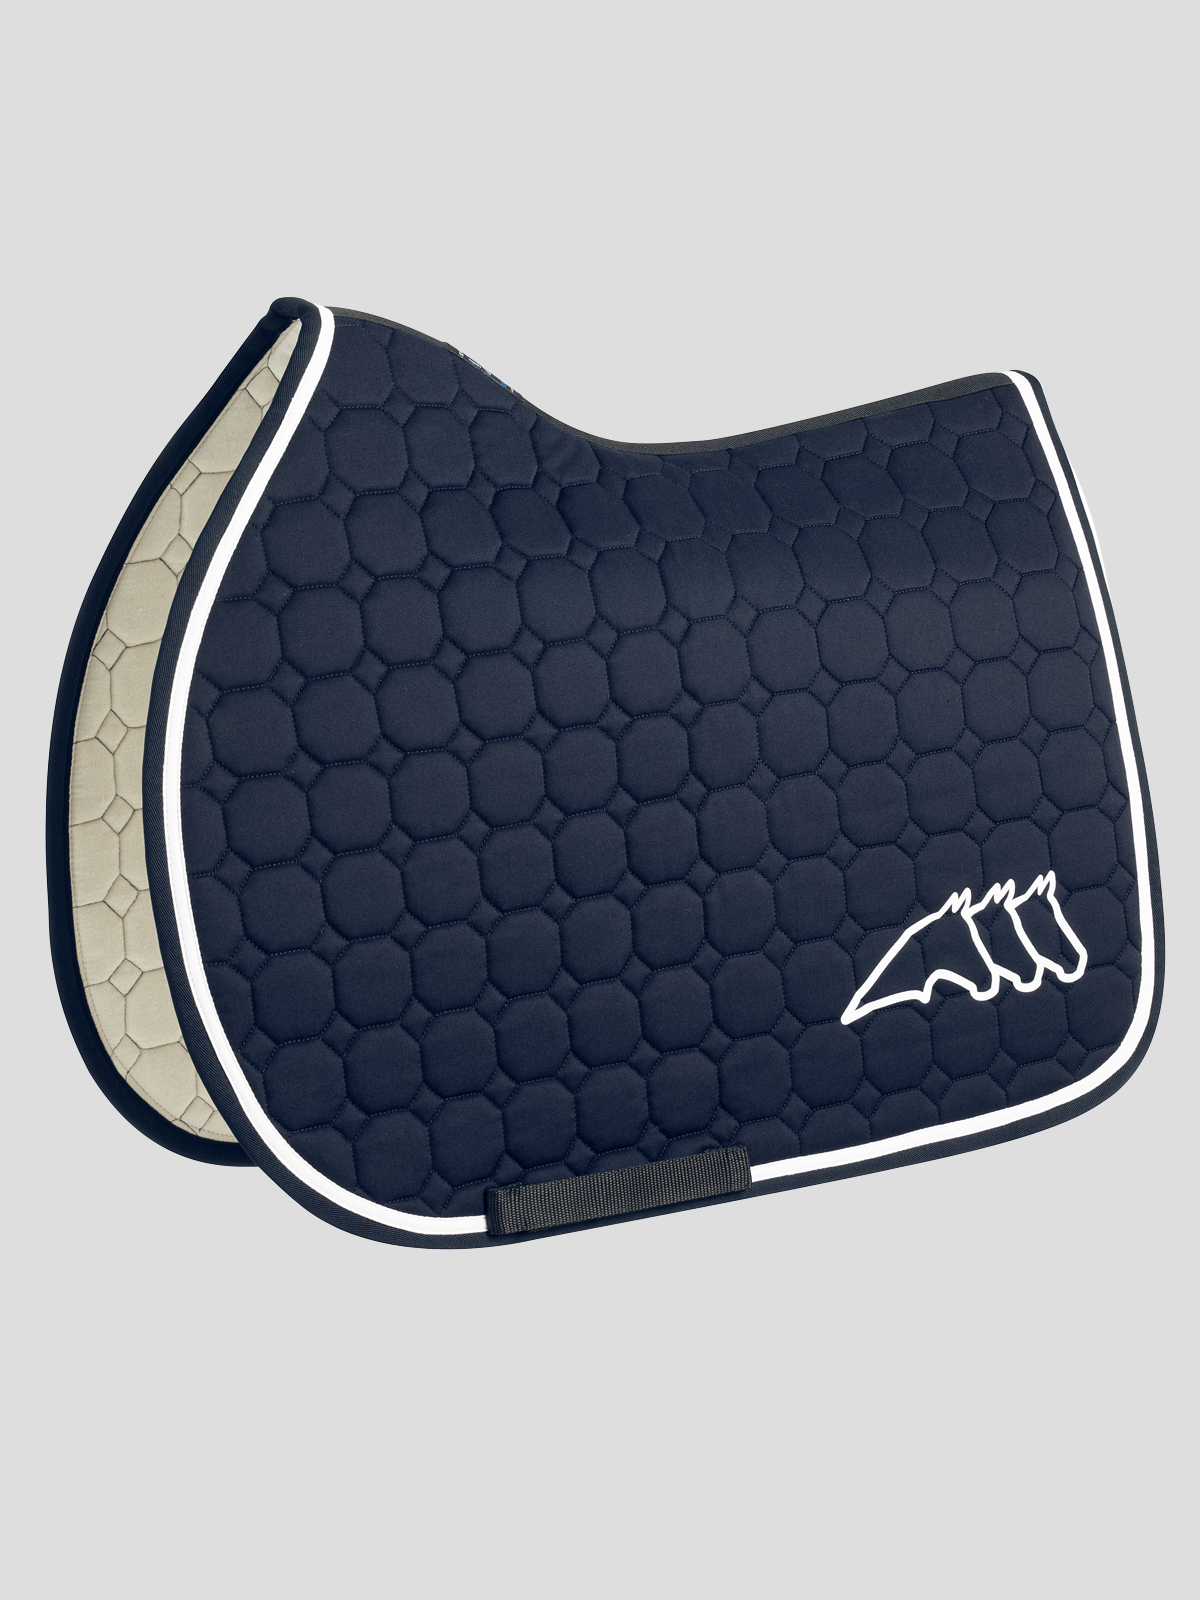 Cristophec OCTAGON QUILTED SADDLE PAD 1